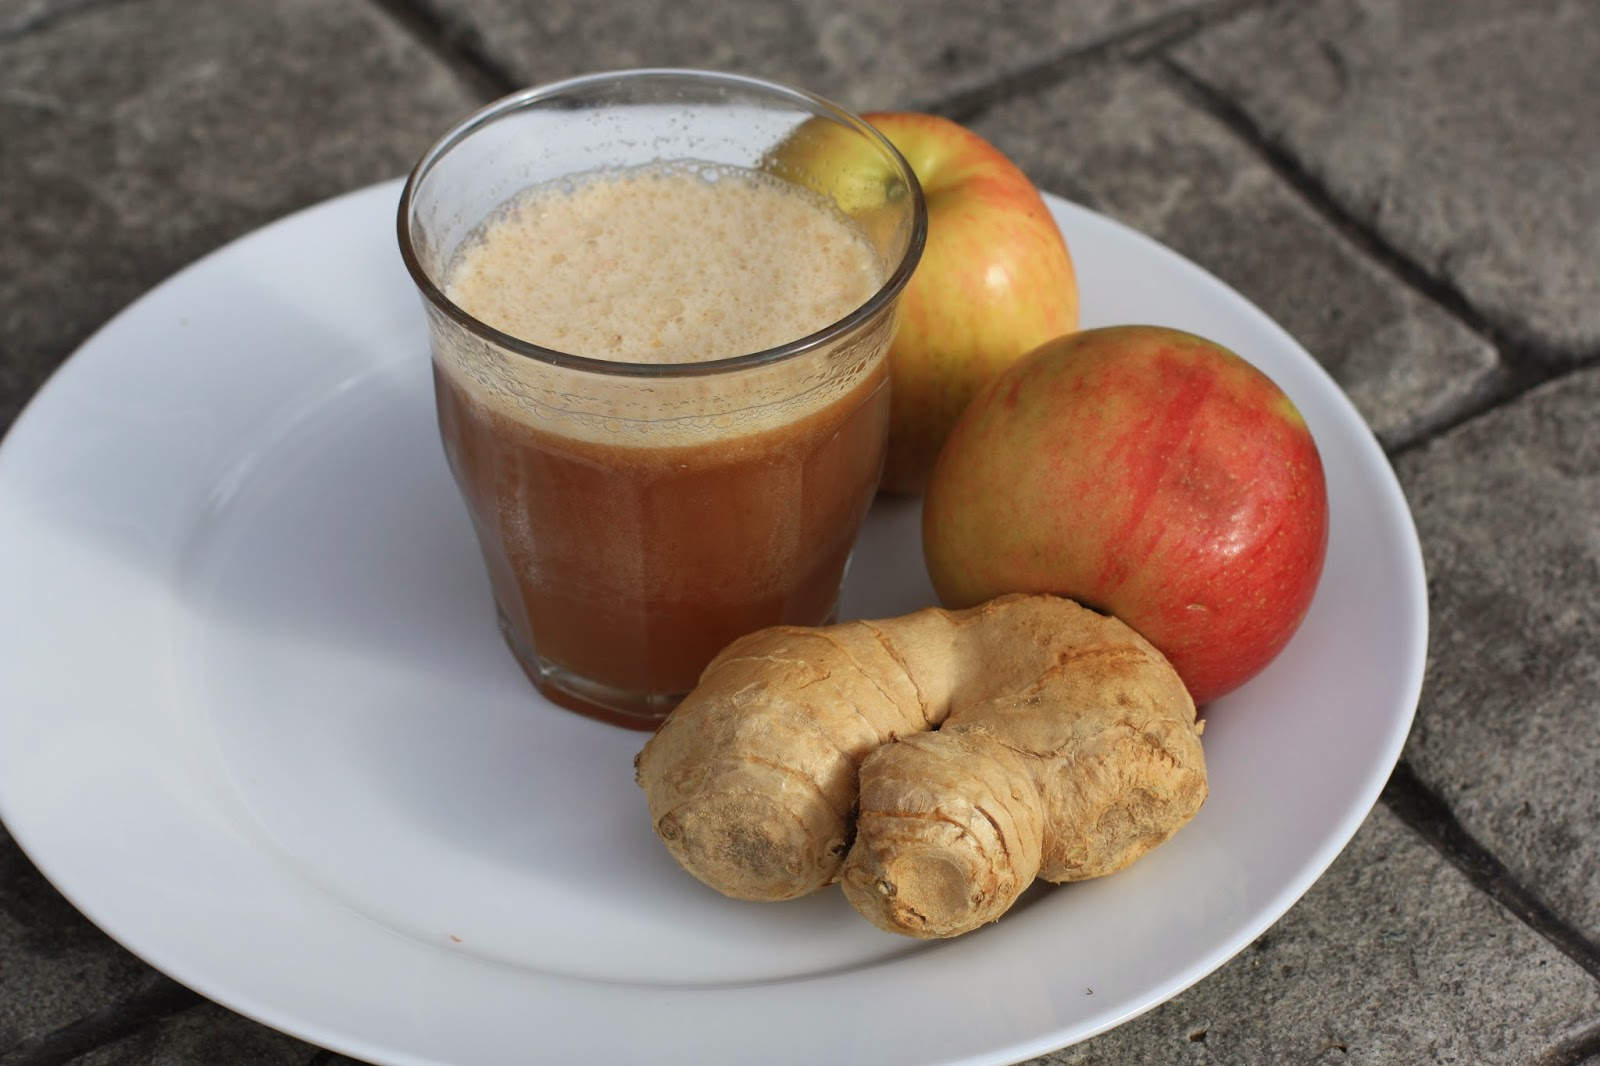 jamaican apple and ginger juice